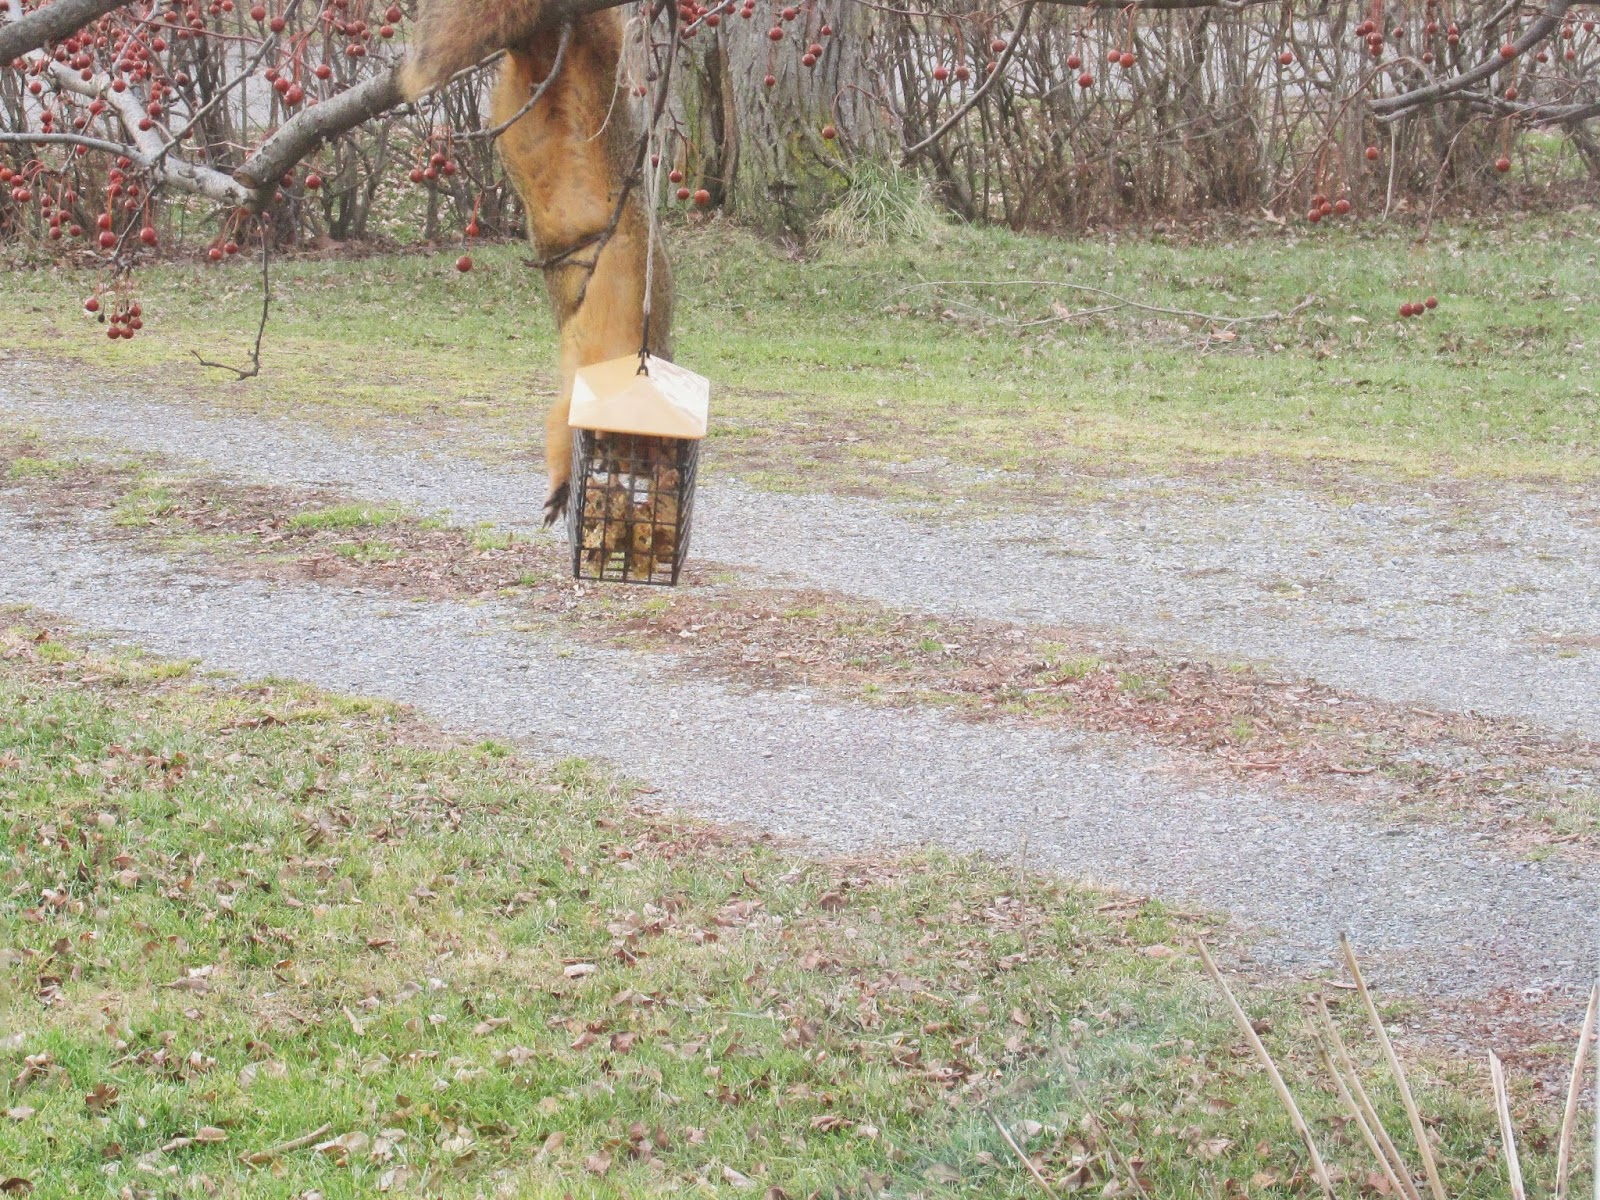 Squirrel eating all the bird suet